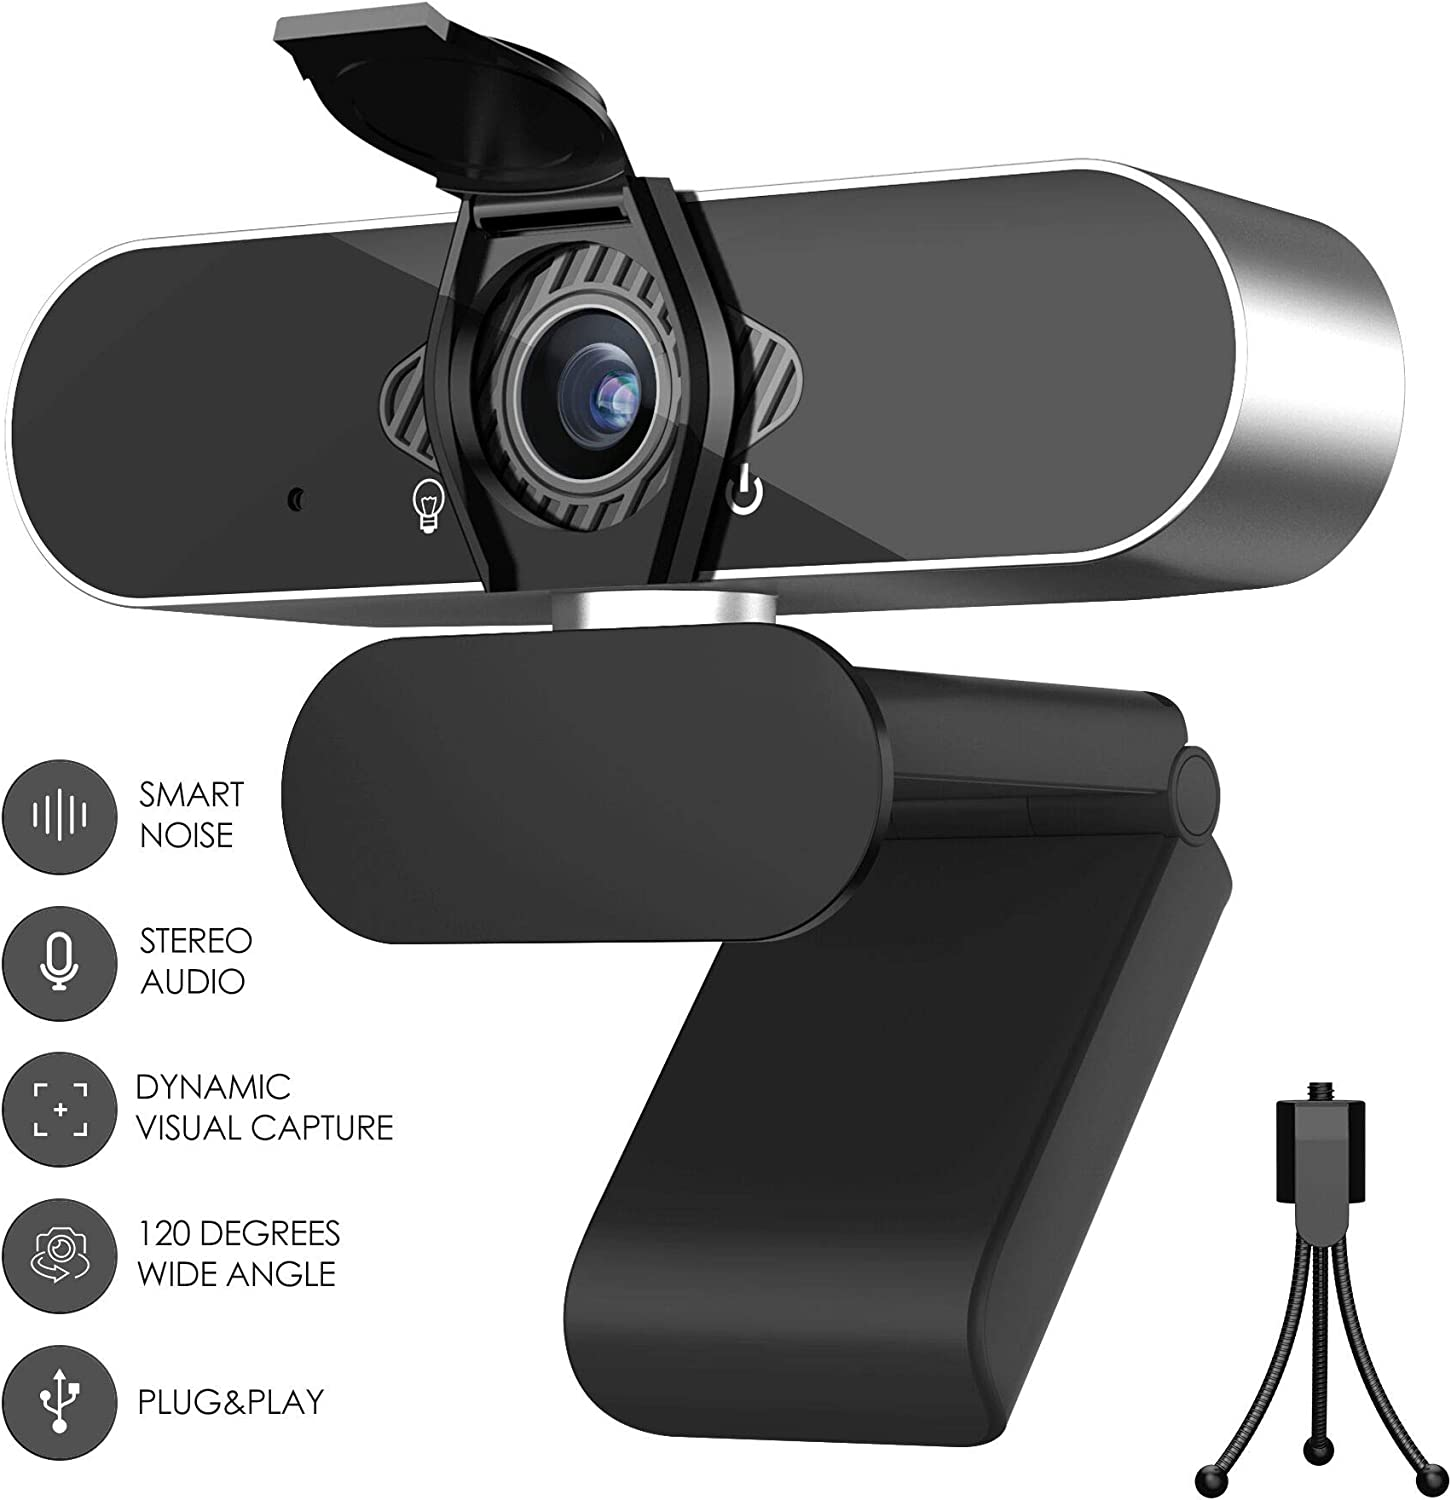 HD 1080p Webcam with Microphone for Desktop and Laptop - External USB Computer Camera with Microphone - Web Camera for Streaming, Remote Study and Work, Video Calling, Recording, Conferencing